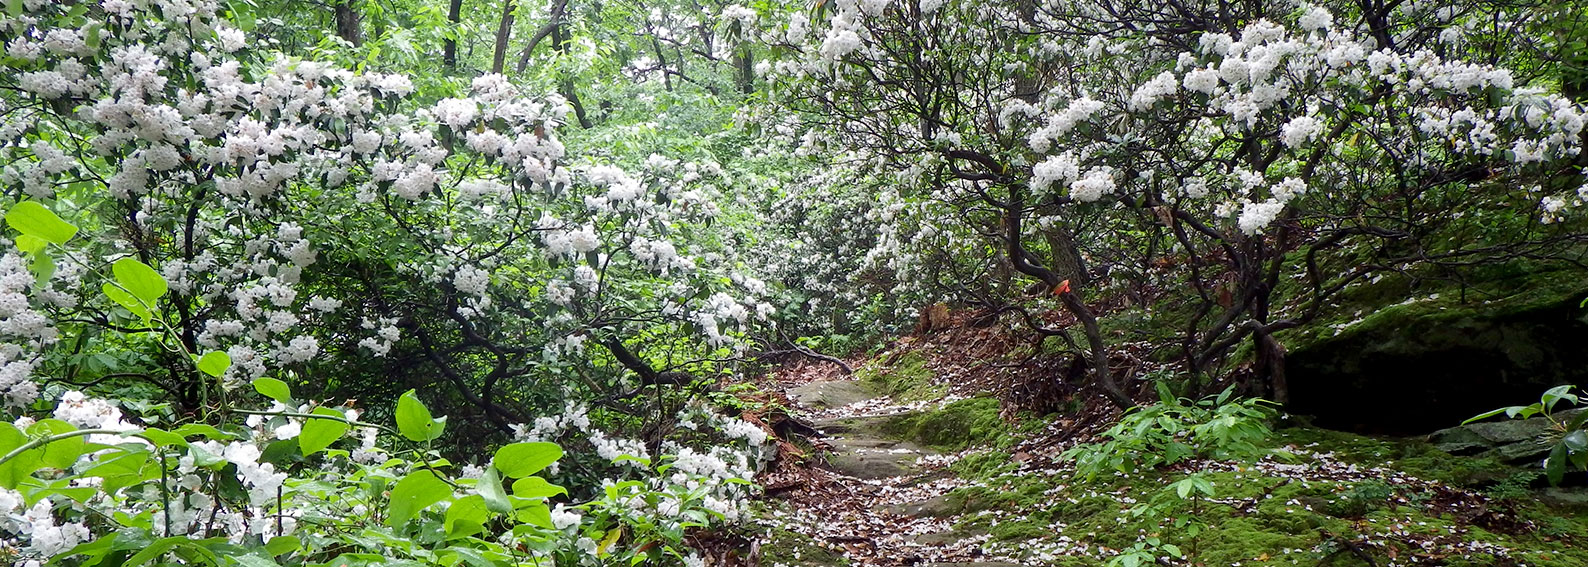 path through bushes with white flowers